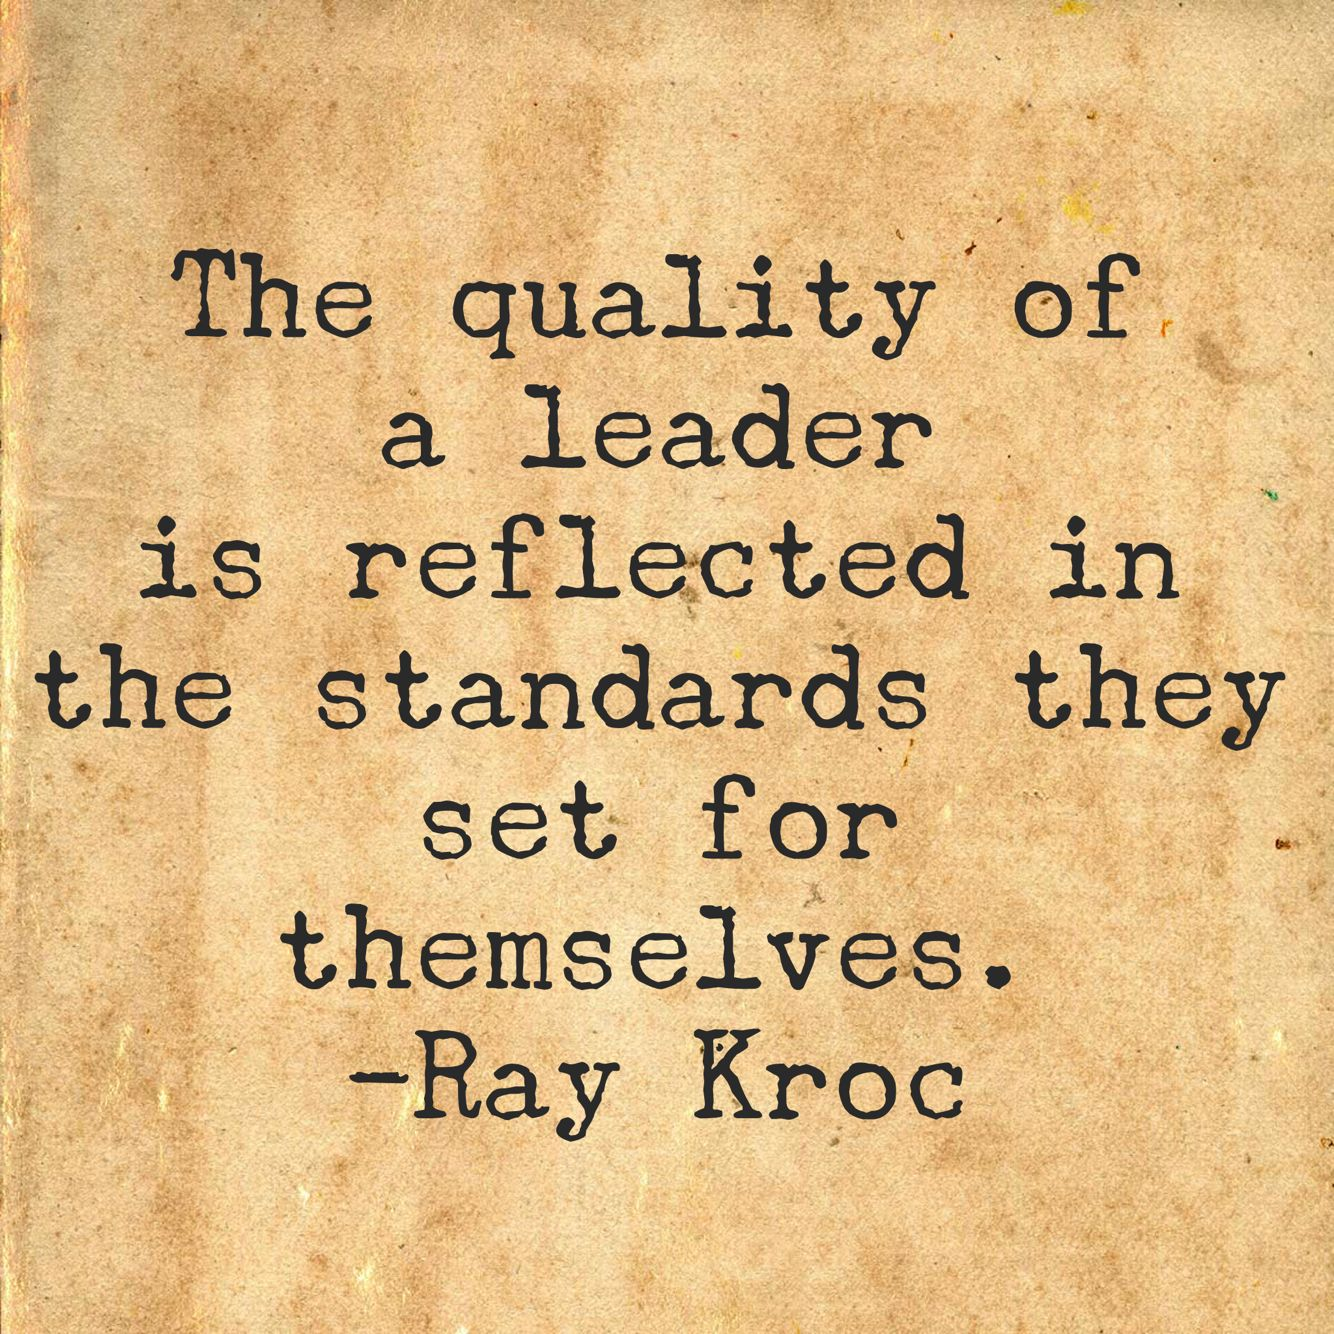 The quality of a leader is reflected in the standards they set for themselves. -Ray Kroc